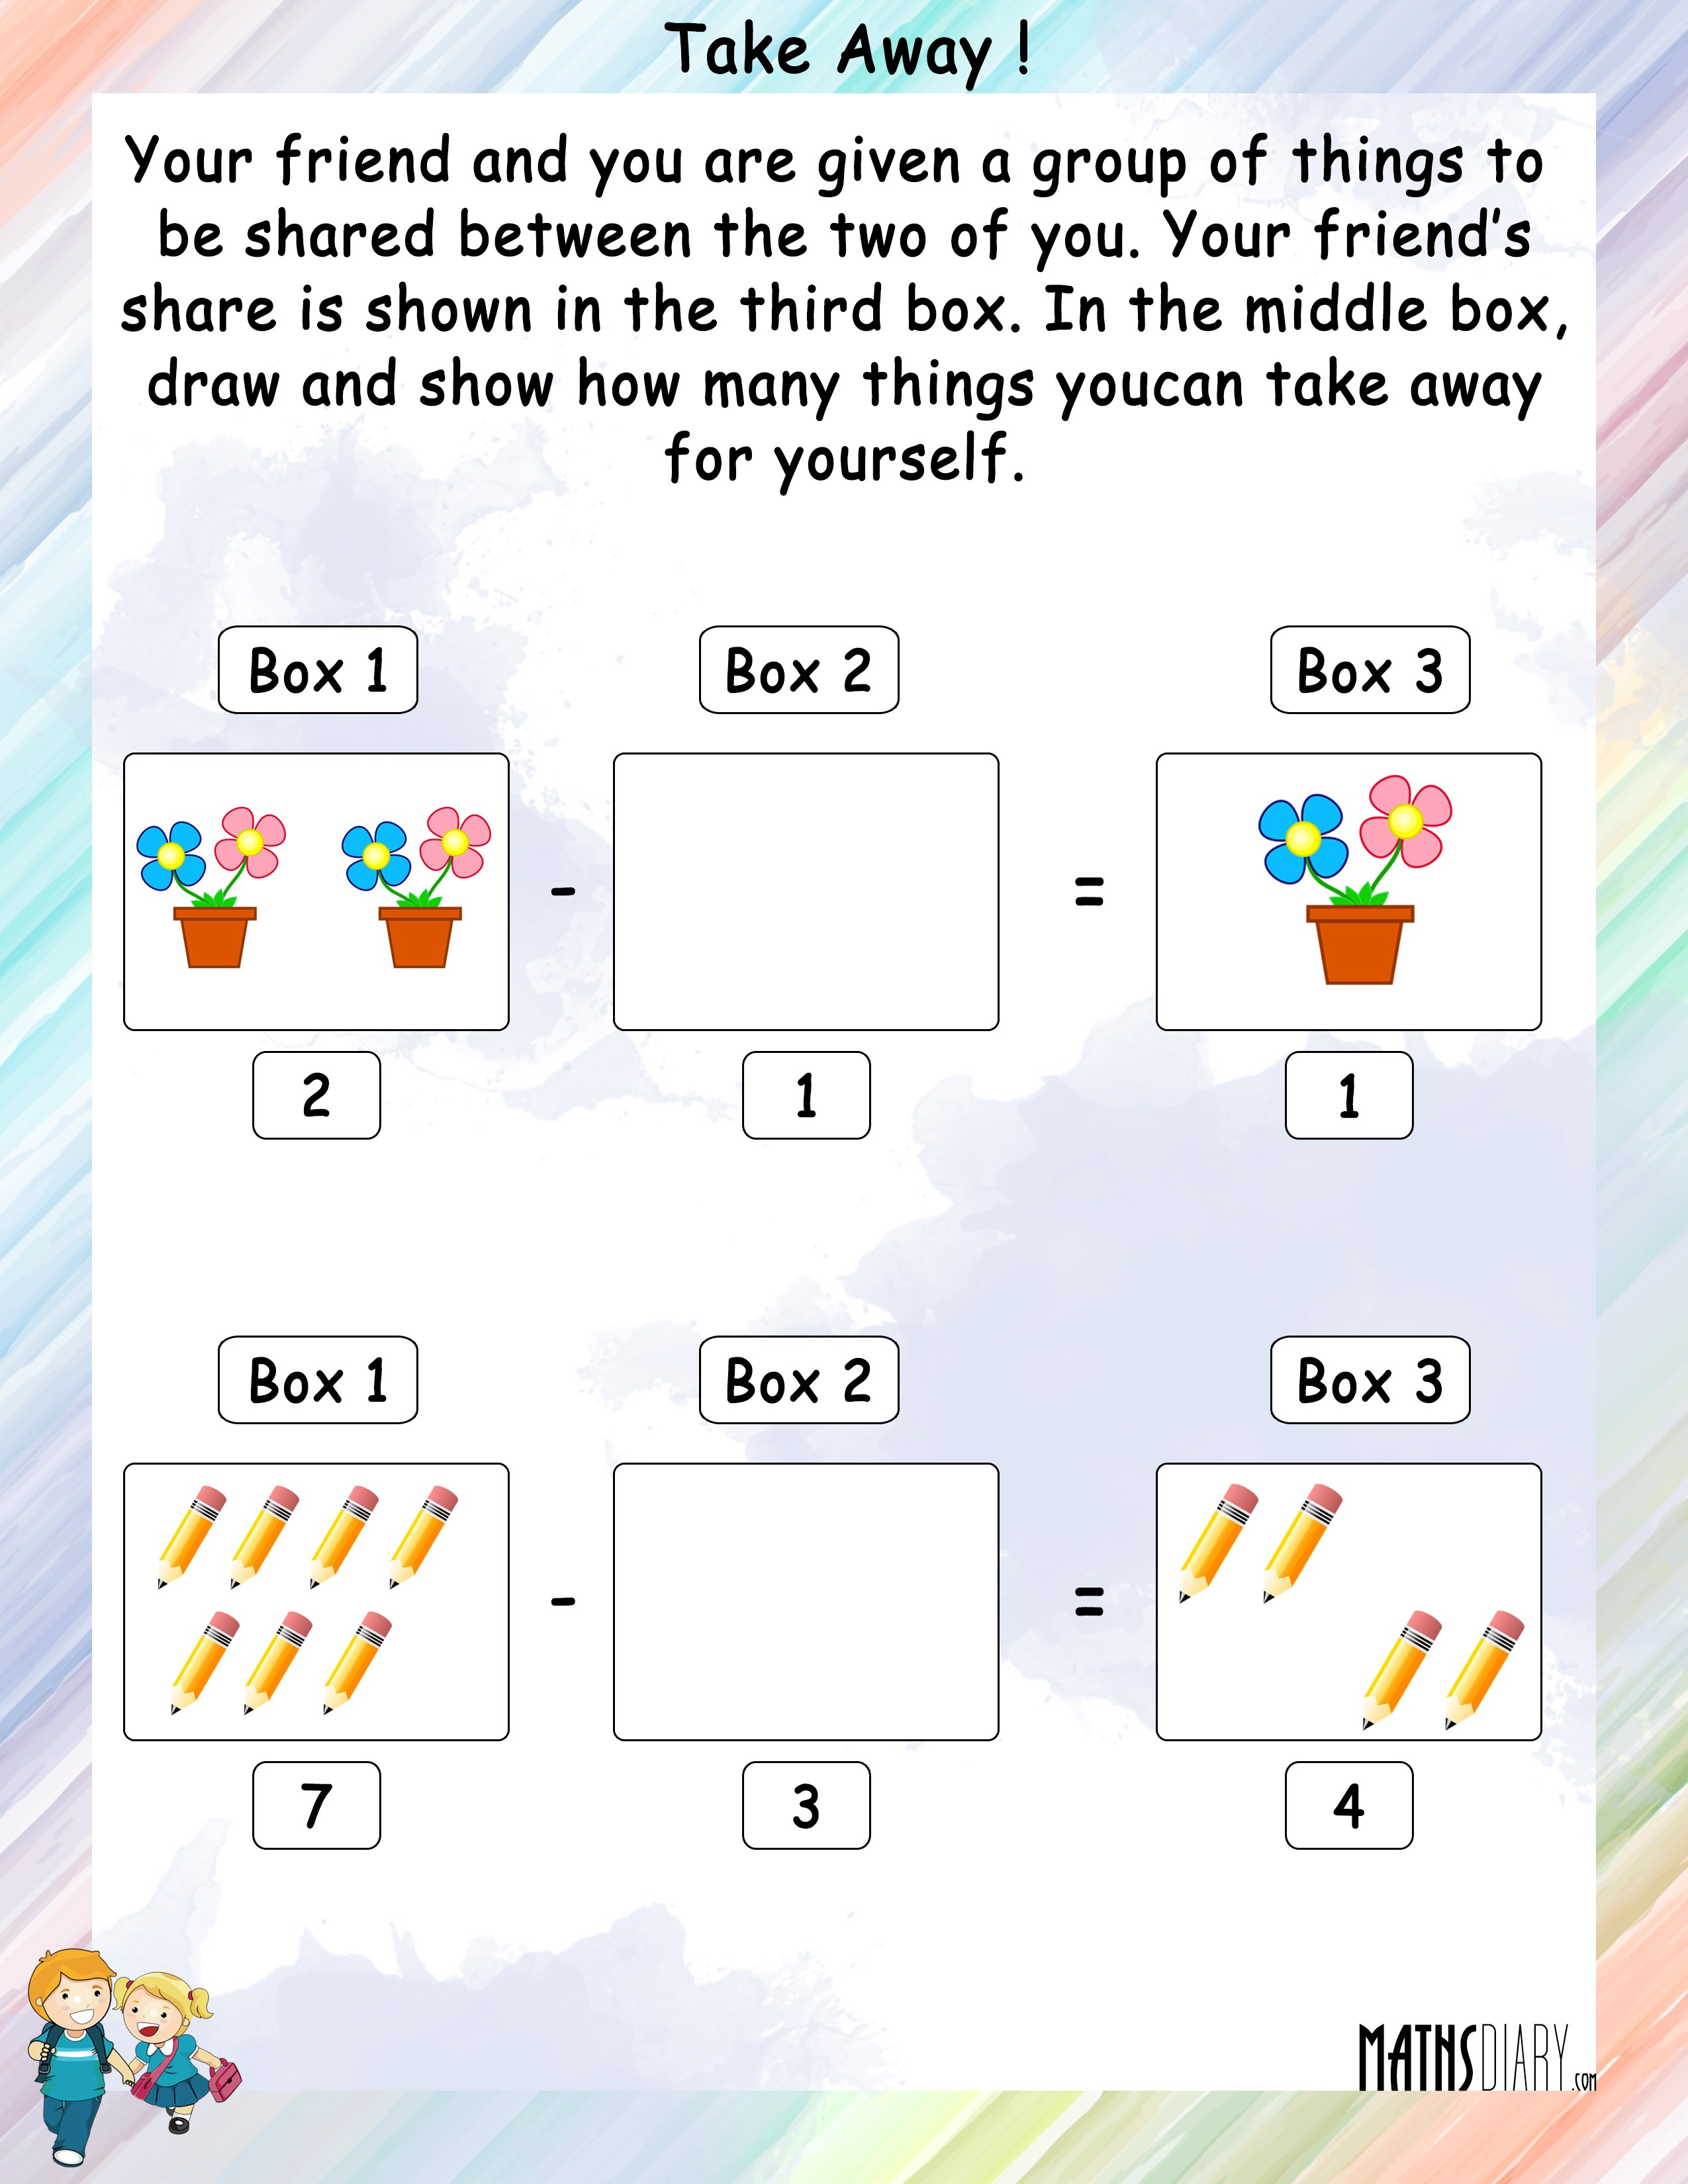 math games, math writing, math ideas, math journals, math tables, math activities, math multiplication, math lessons, math for kindergarteners, math quizzes, math tips, math paper, math workbooks, math printables, math printouts, math handouts, math flashcards, on taking away maths worksheet